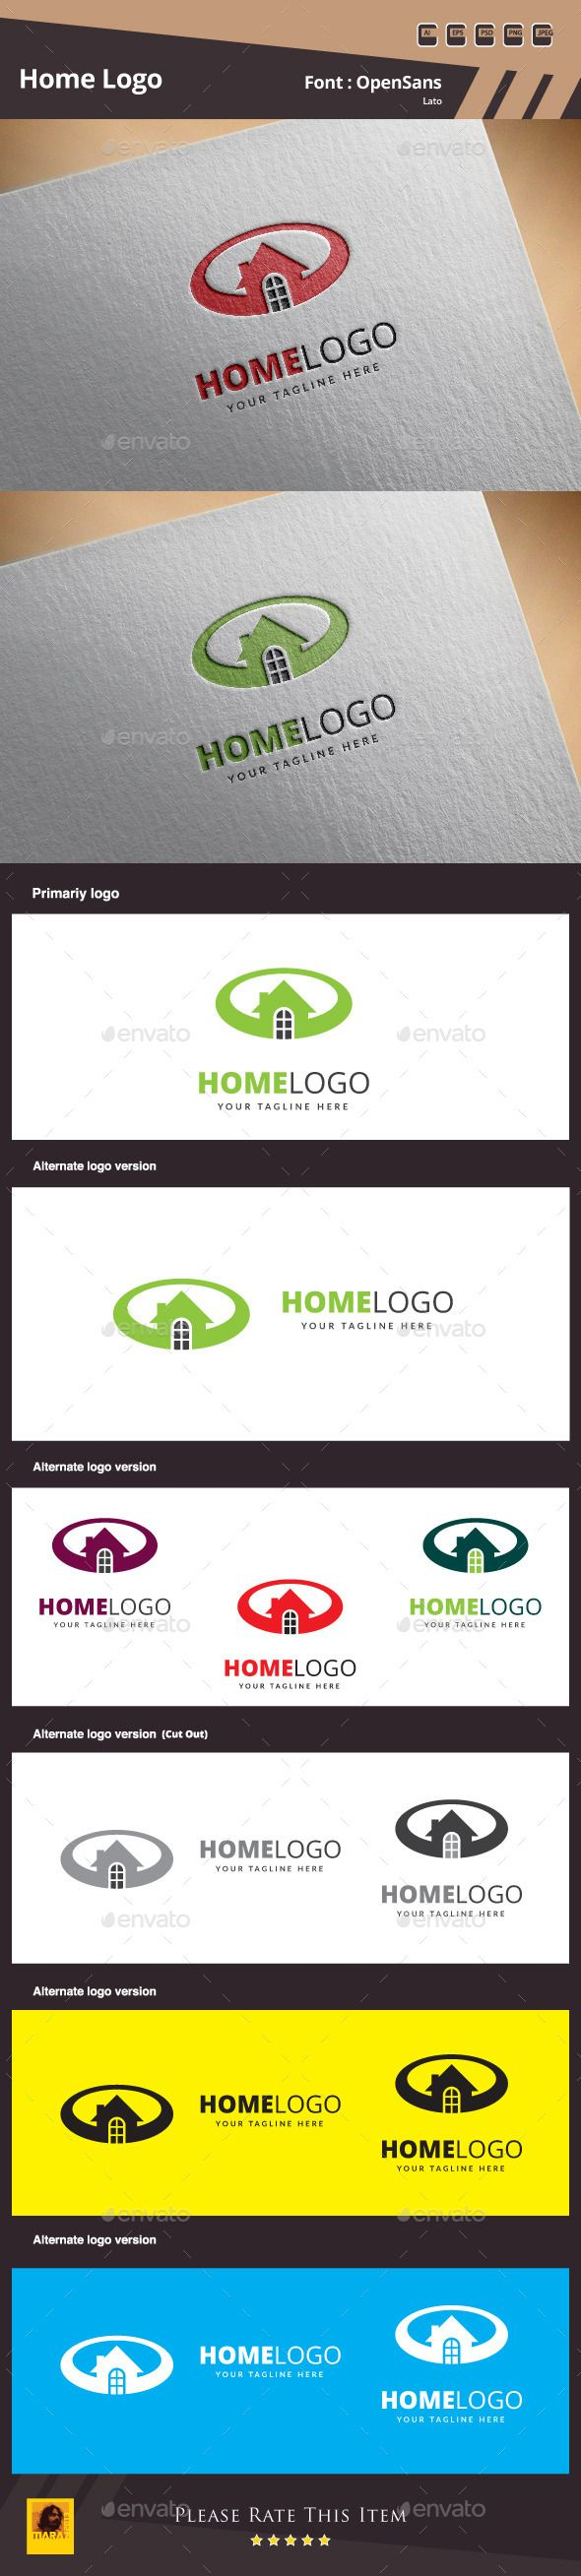 Home Logo Template by maraz2013 Home Logo Template Suitable for: 鈥?20Design Studios 鈥?20Photography 鈥?20Web Pages 鈥?20Software and Apps 鈥?20Video Games and Clans 鈥?20Creati